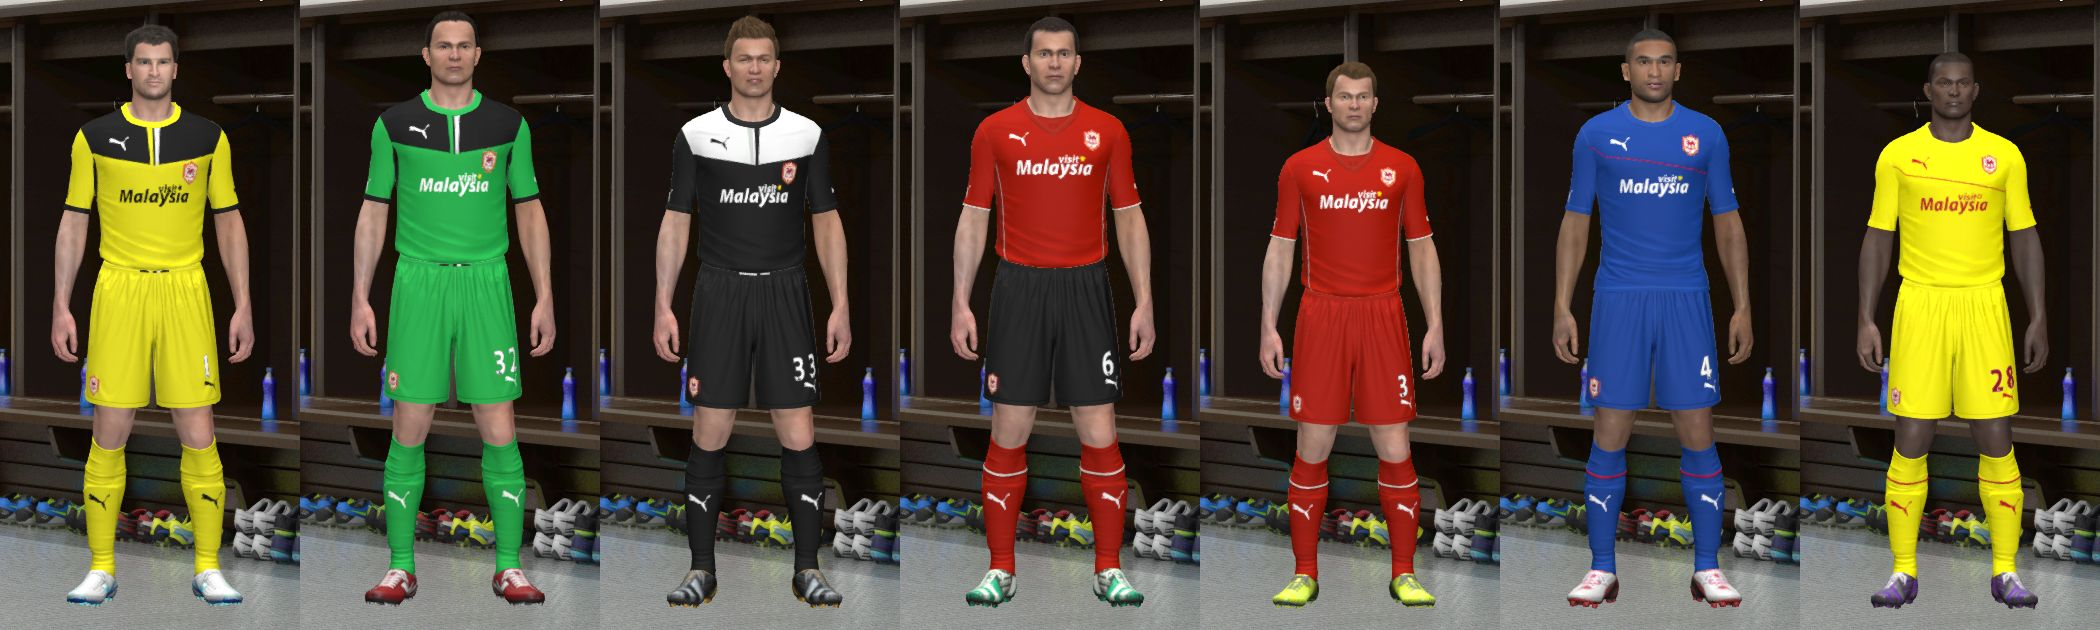 Cardiff City 13/14 Kit Set Update 1 - Pro Evolution Soccer 2014 at